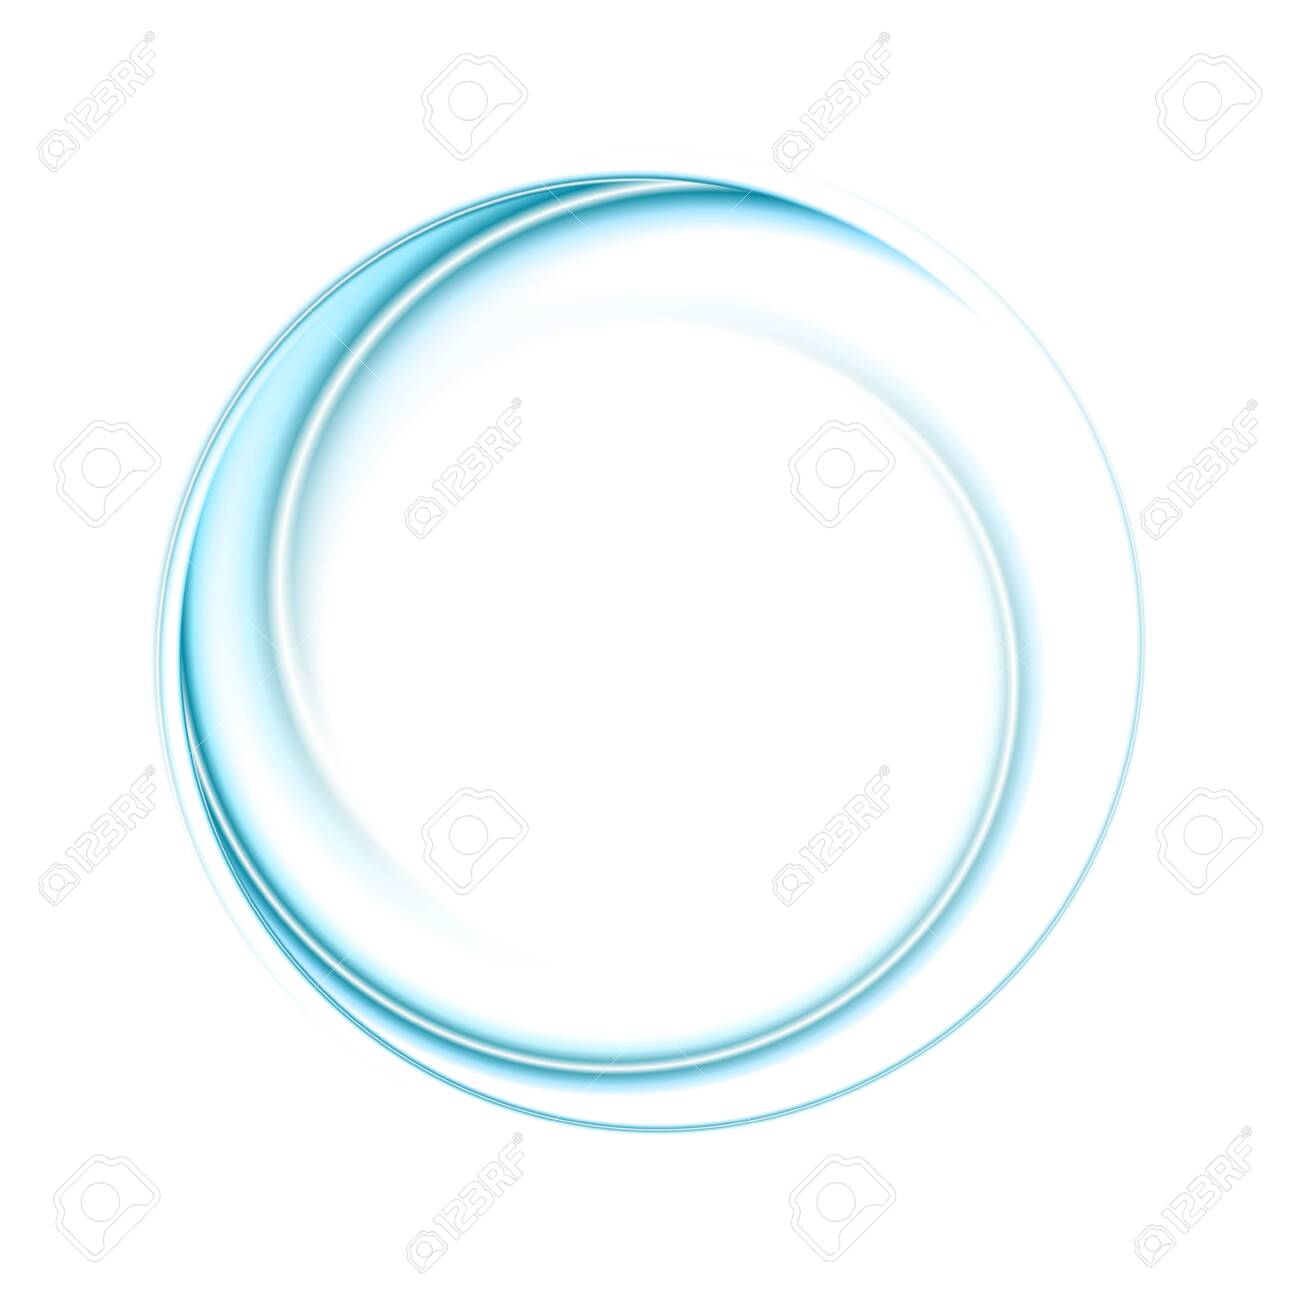 Bright blue smooth abstract circular logo technology background - 130399473